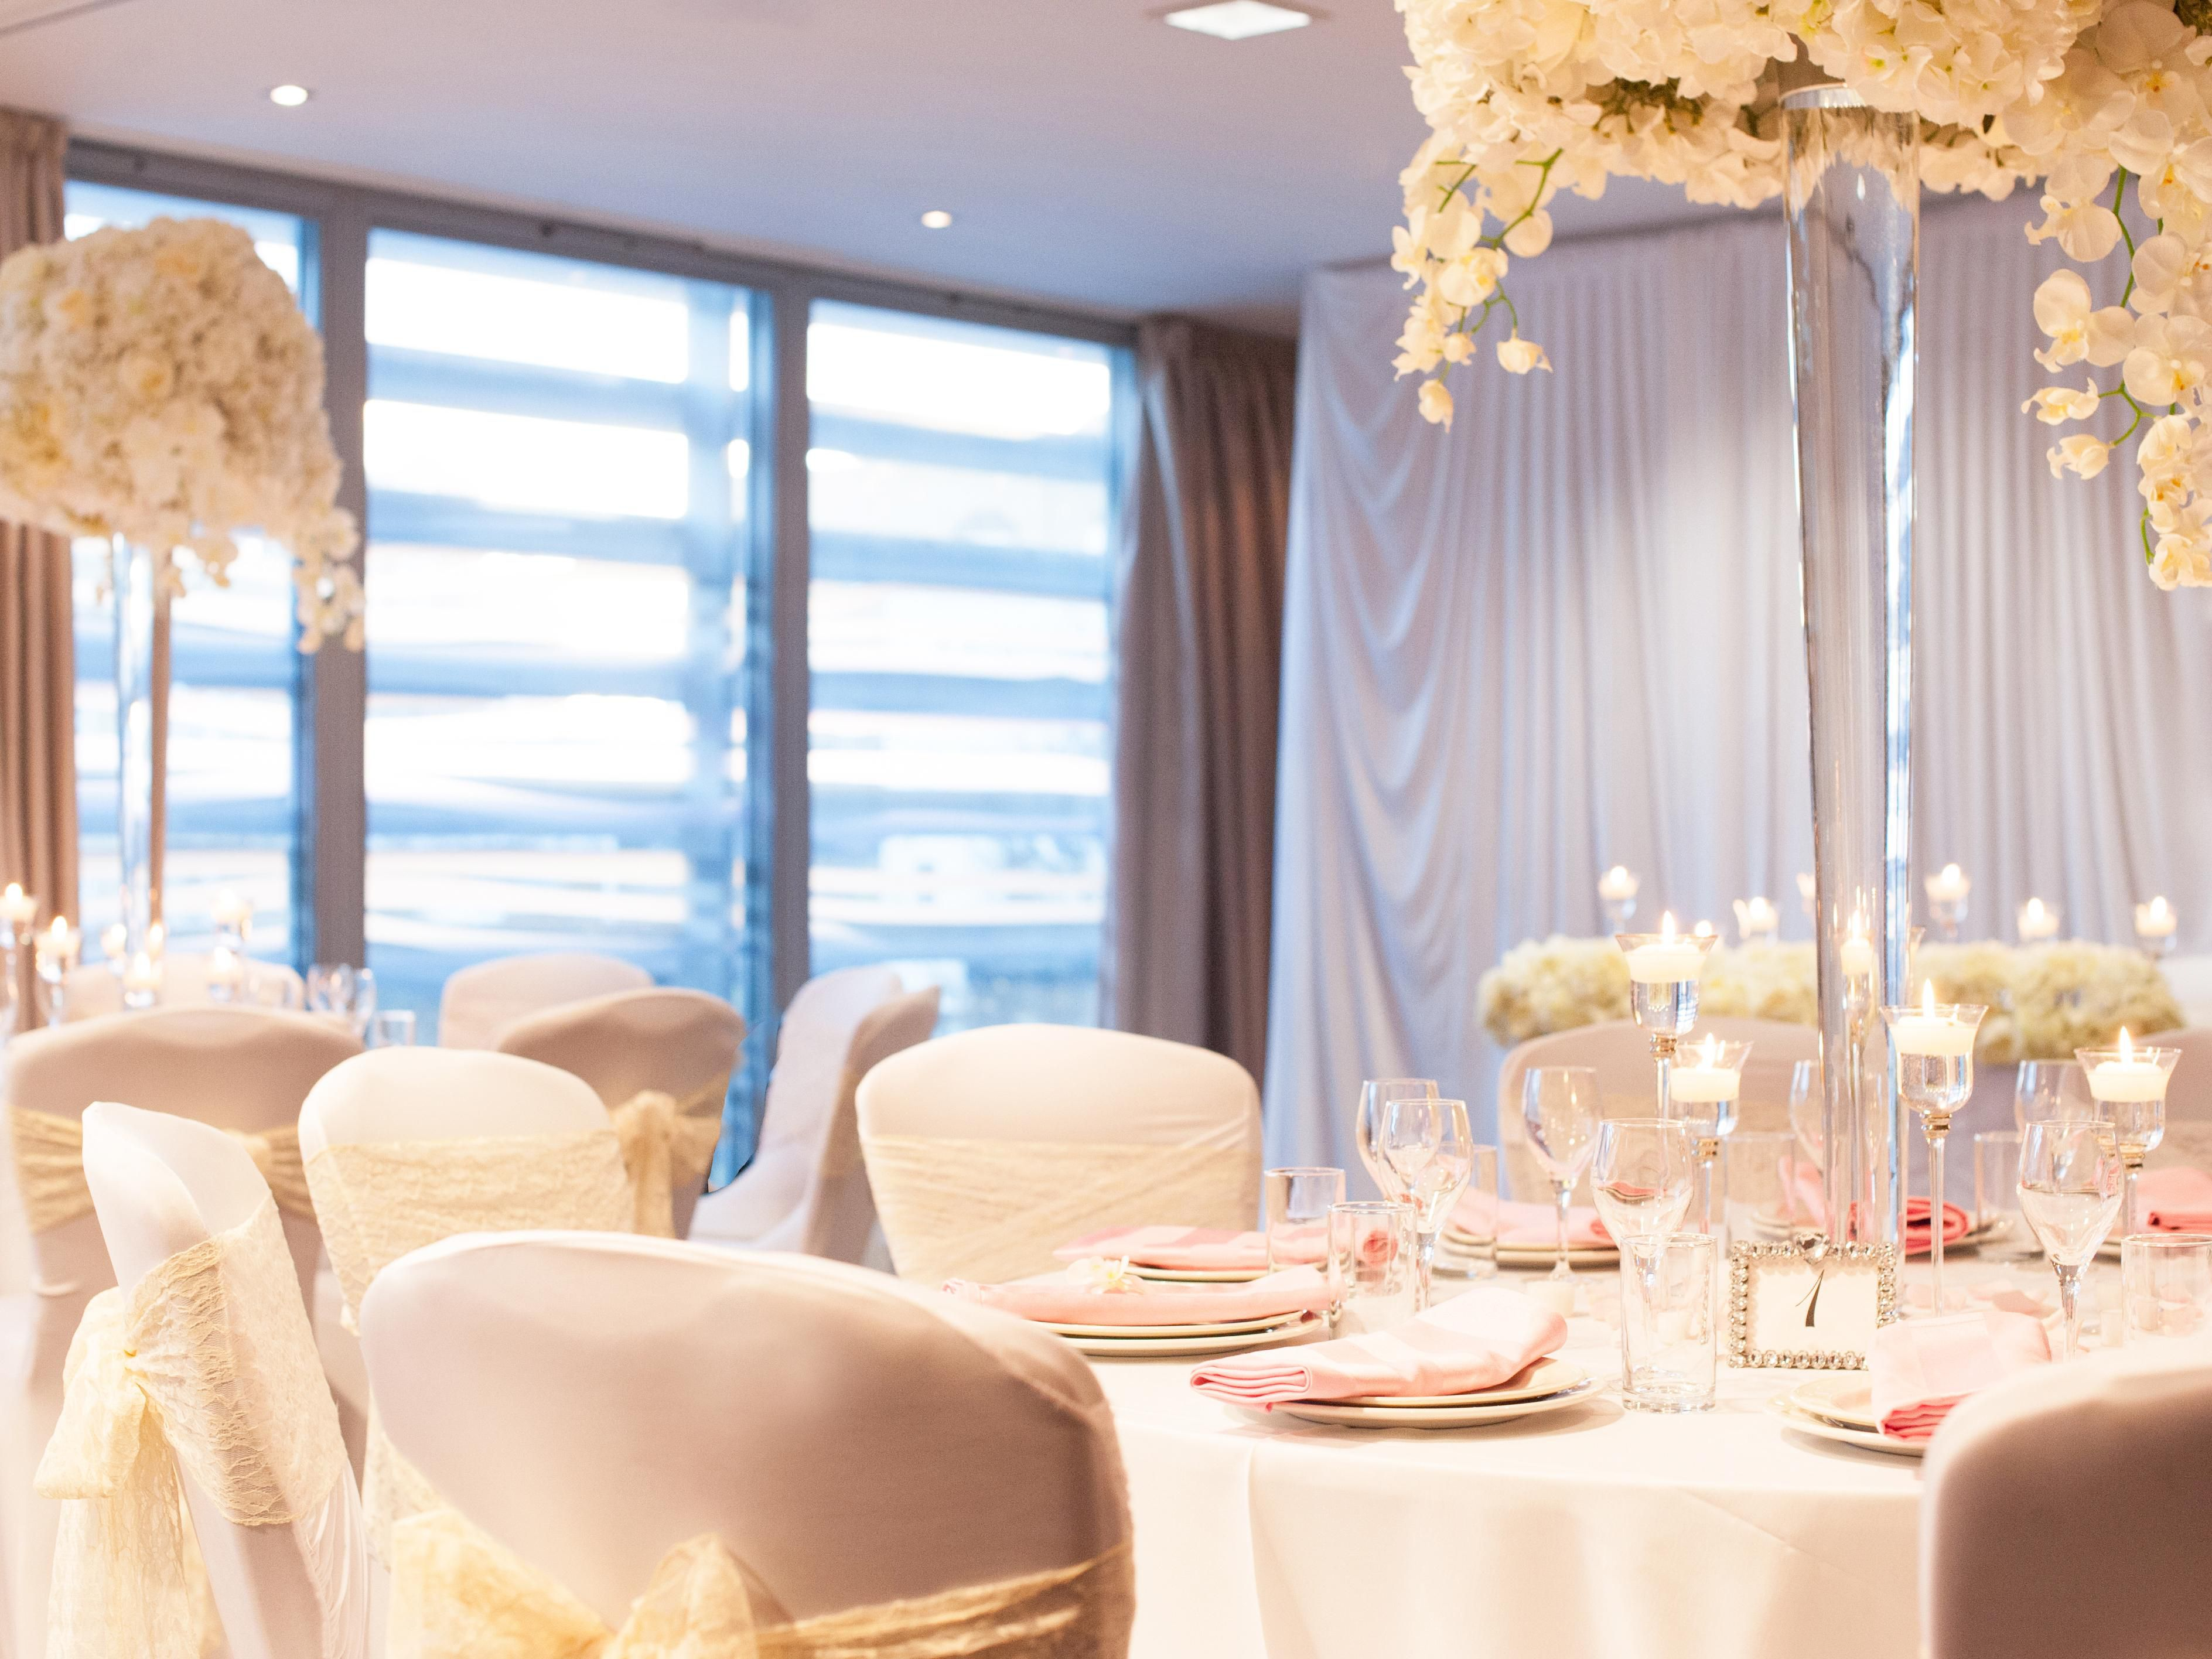 Intimate wedding venue in East London